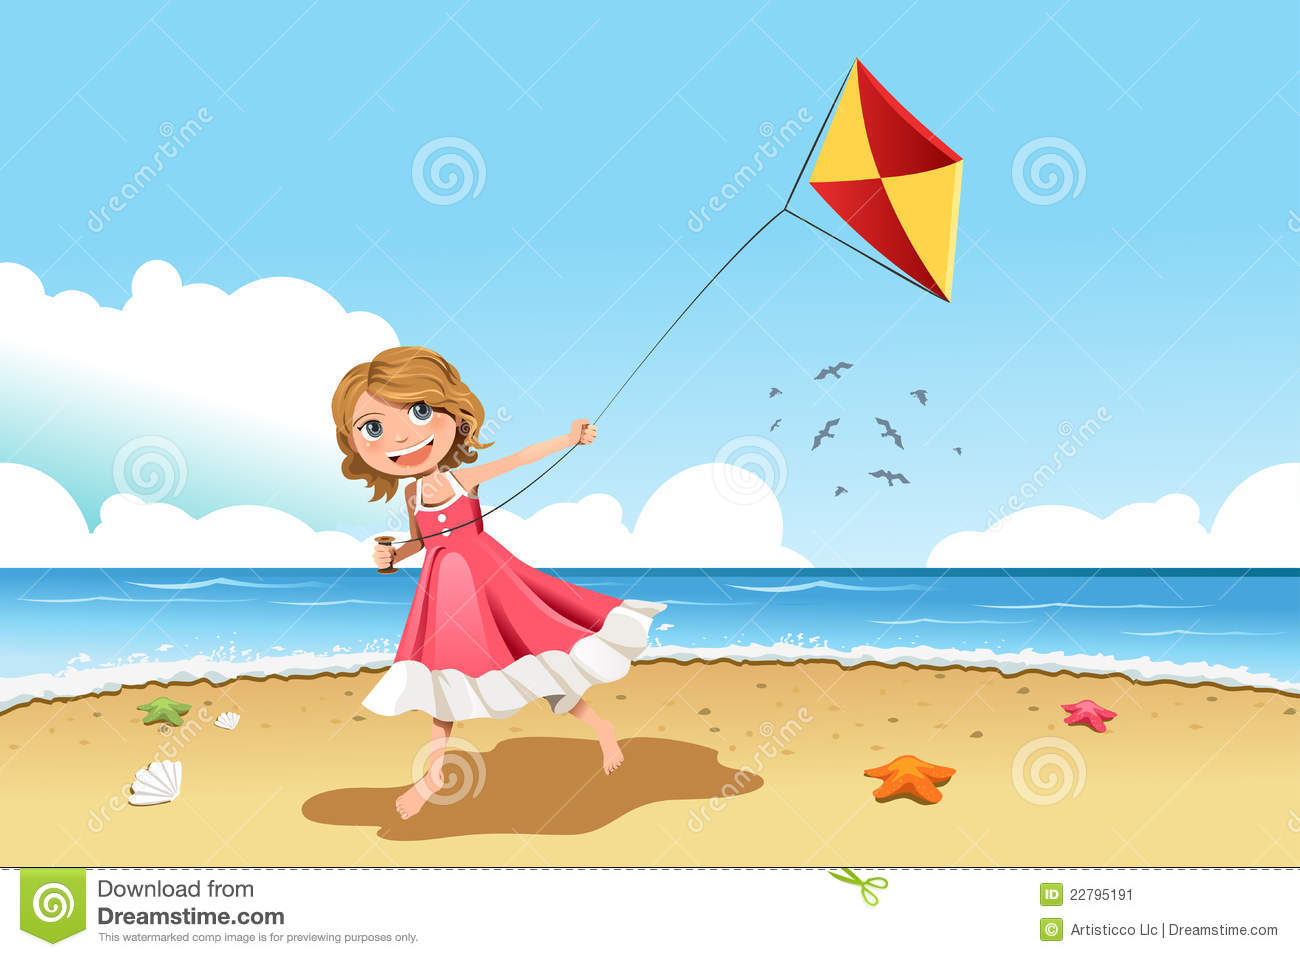 vector illustration of a little girl flying a kite on the beach.